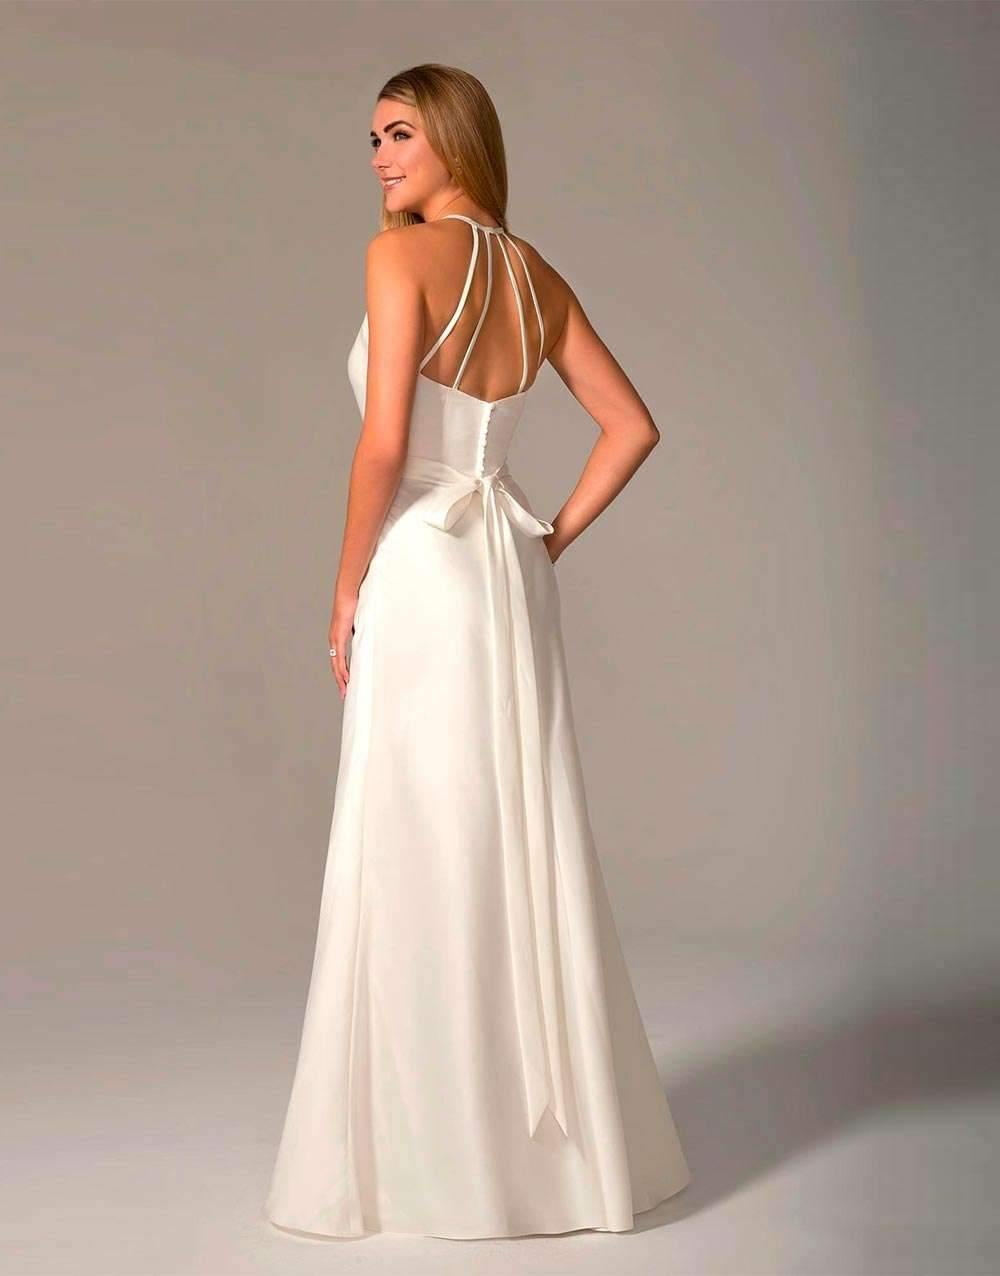 UK14 - TESS - SALE - Adore Bridal and Occasion Wear